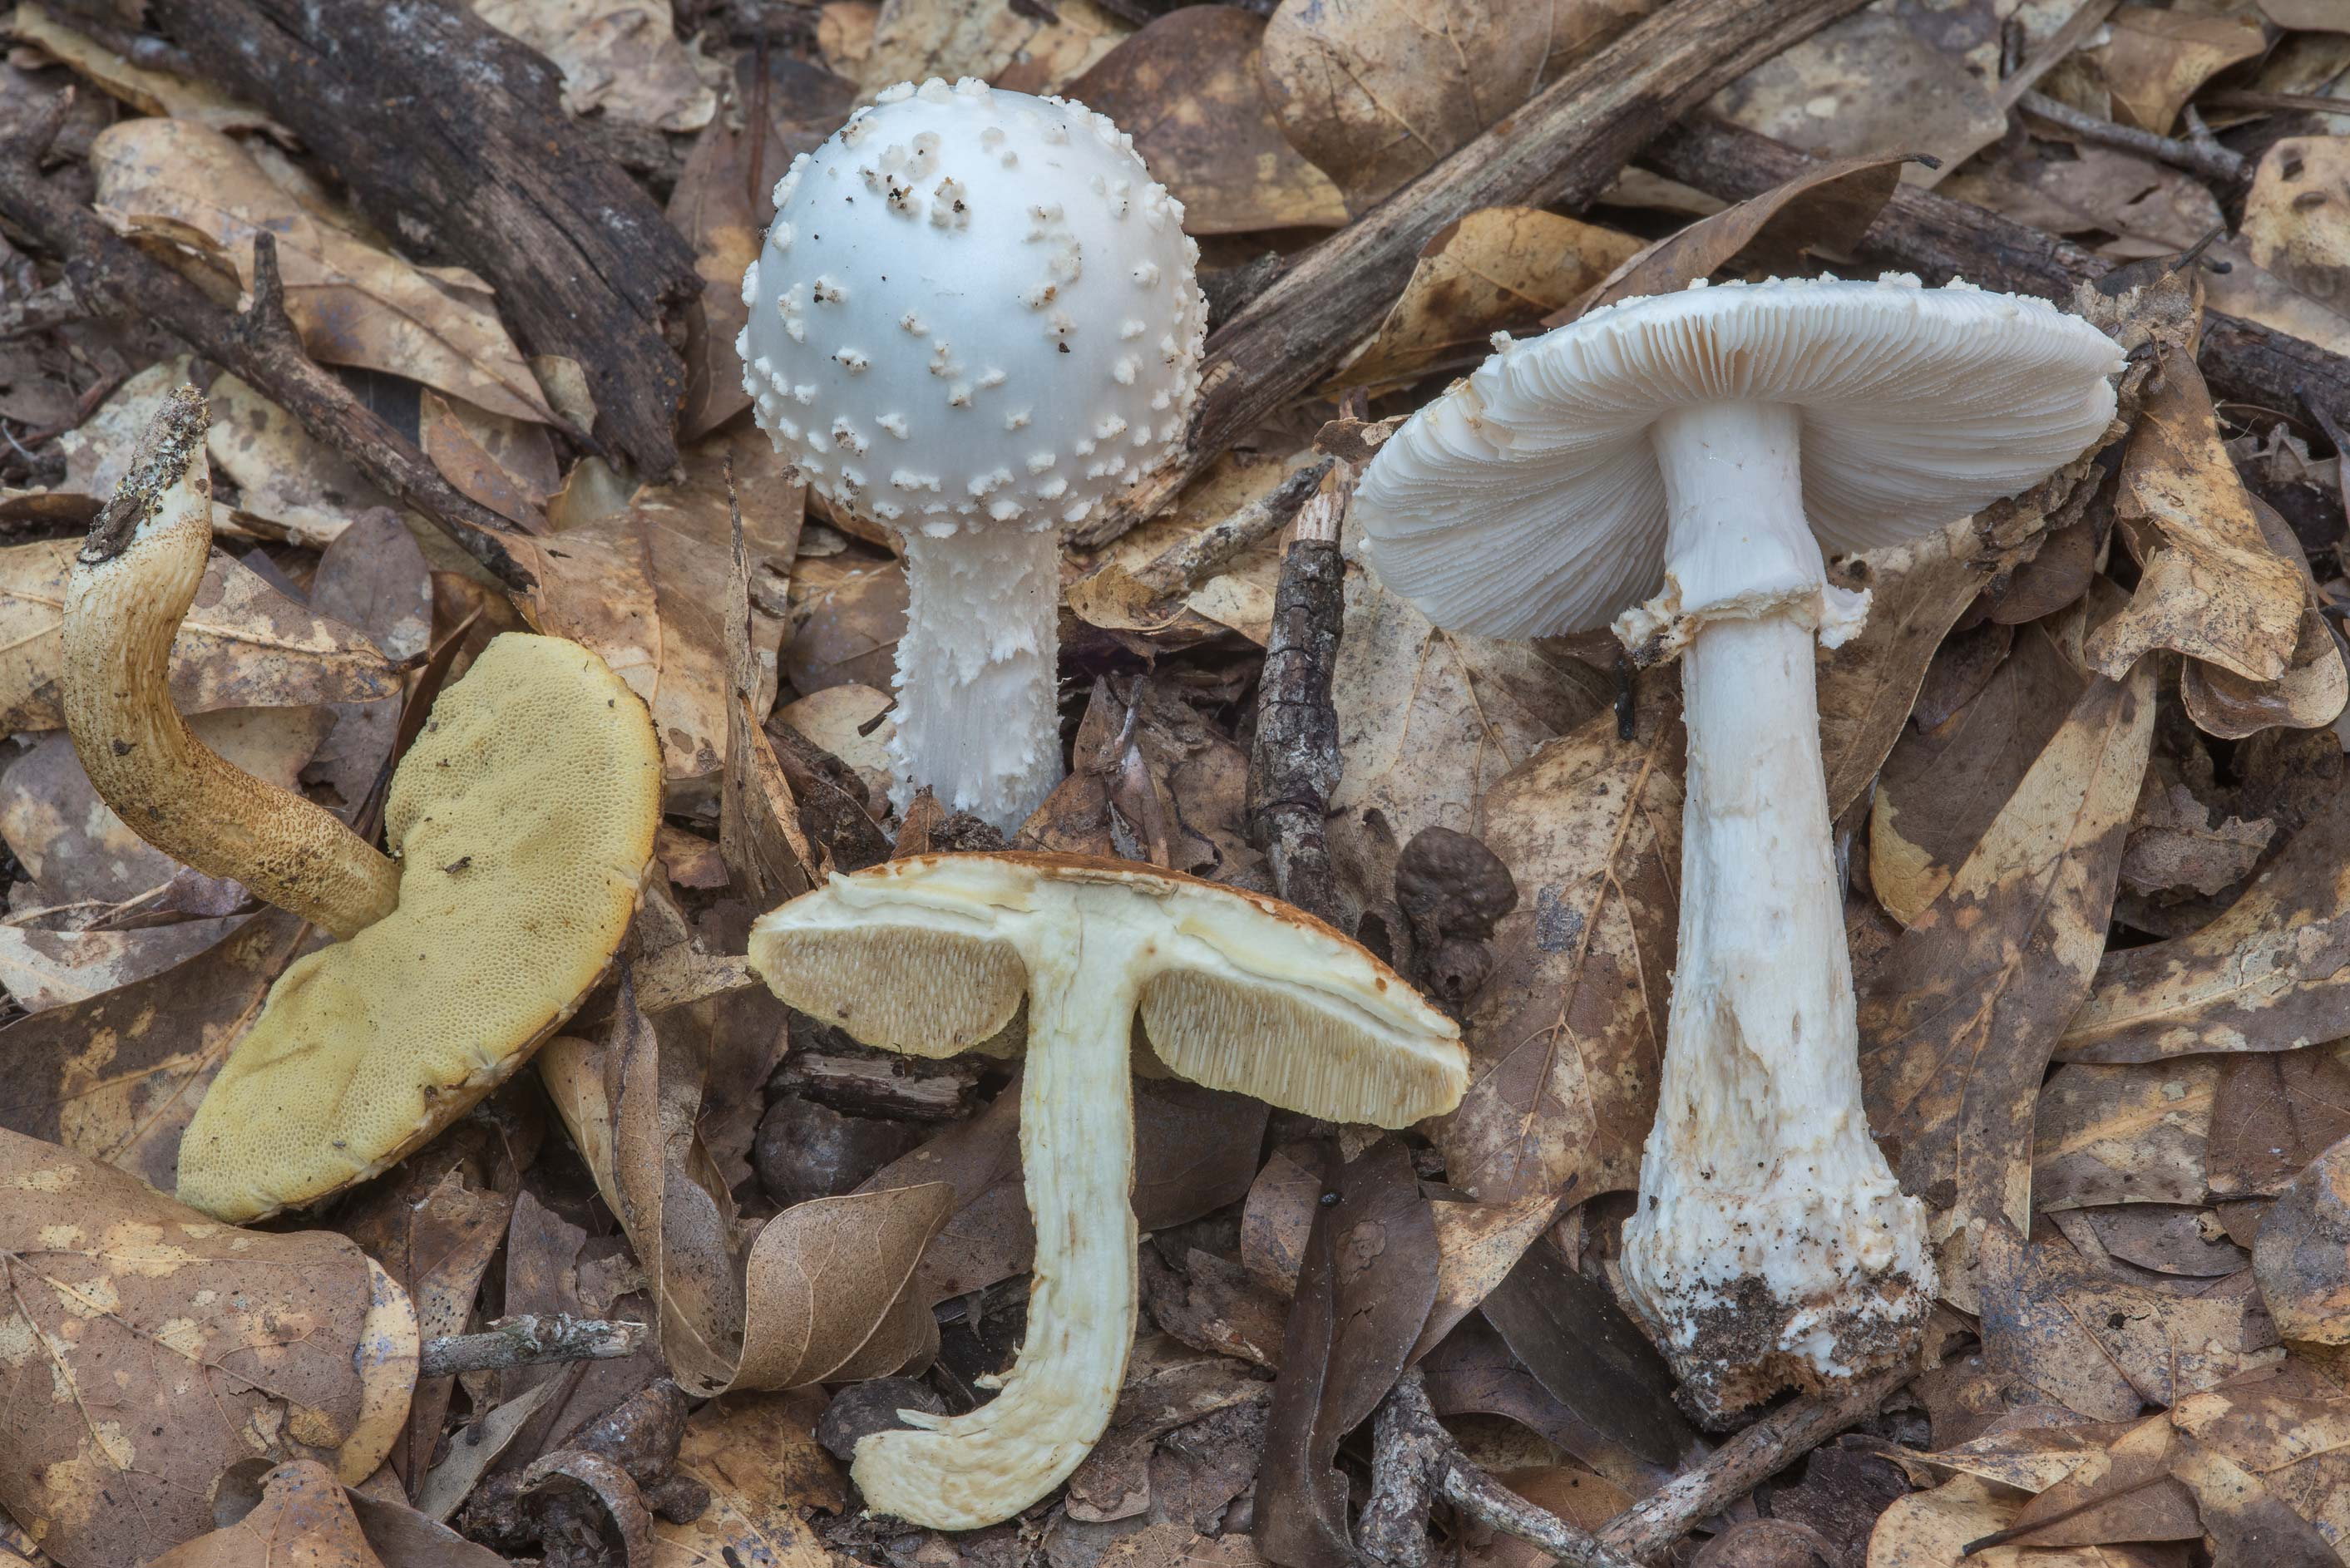 Some white Amanita mushrooms together with...Creek Park. College Station, Texas